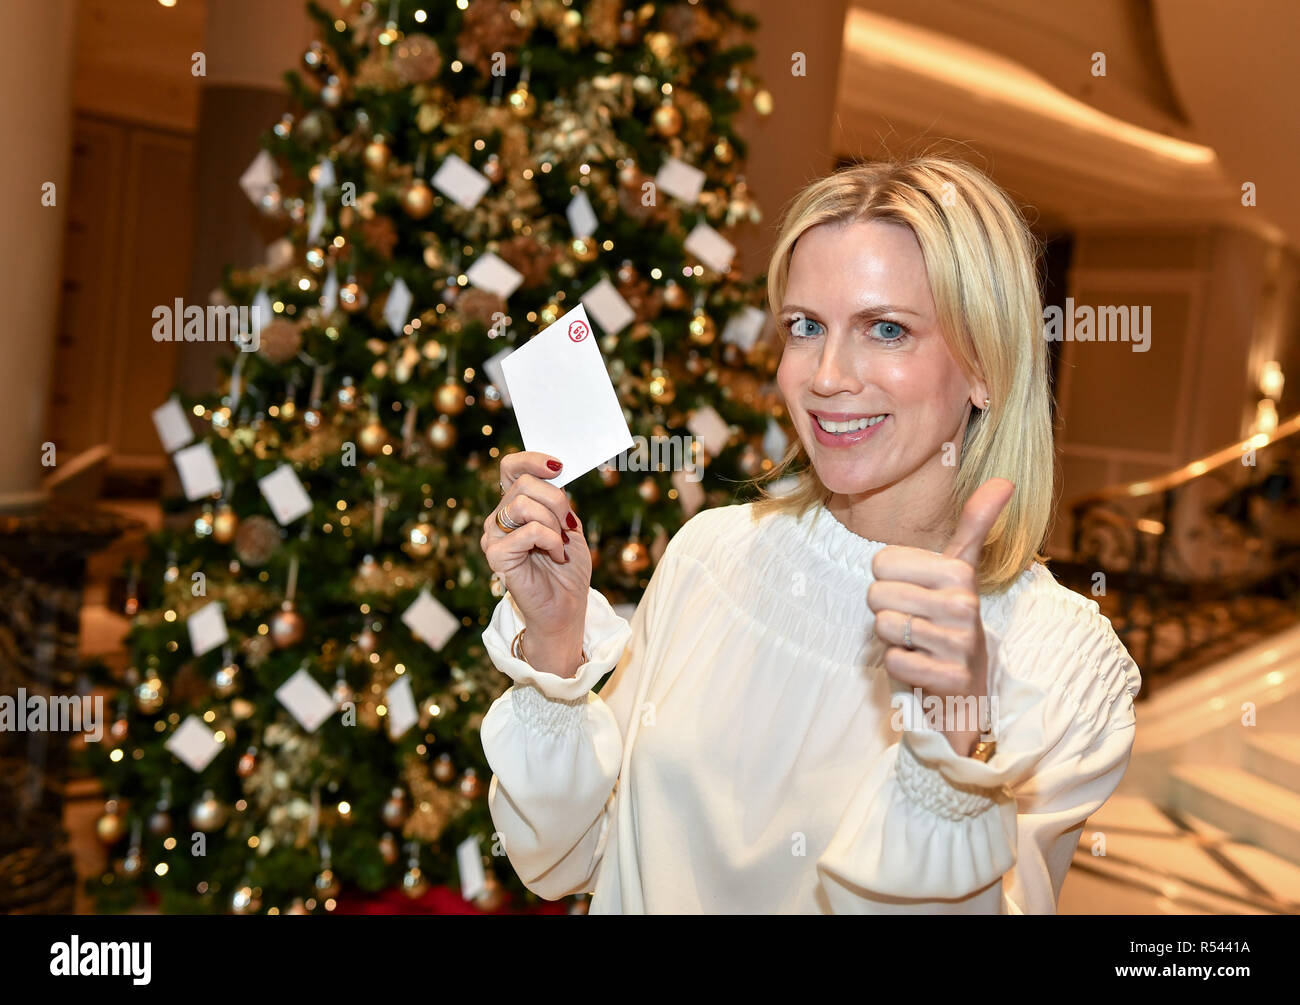 29 November 2018, Berlin: Tamara Countess von Nayhauß-Cormons, Ambassador of the Björn Schulz Foundation, opens the campaign 'Berlin fulfils the heart's desires of seriously ill children in cooperation with the Björn Schulz Foundation and the Hotel Ritz-Carlton' at the 'Giving Tree' in the Hotel Ritz-Carlton. Guests and interested parties can take a child's initially invisible wish off their hands and fulfil it. These are small, simple child wishes worth up to 40 euros. For over 20 years, the Björn Schulz Foundation has accompanied, relieved and strengthened families with children, adolescents - Stock Image